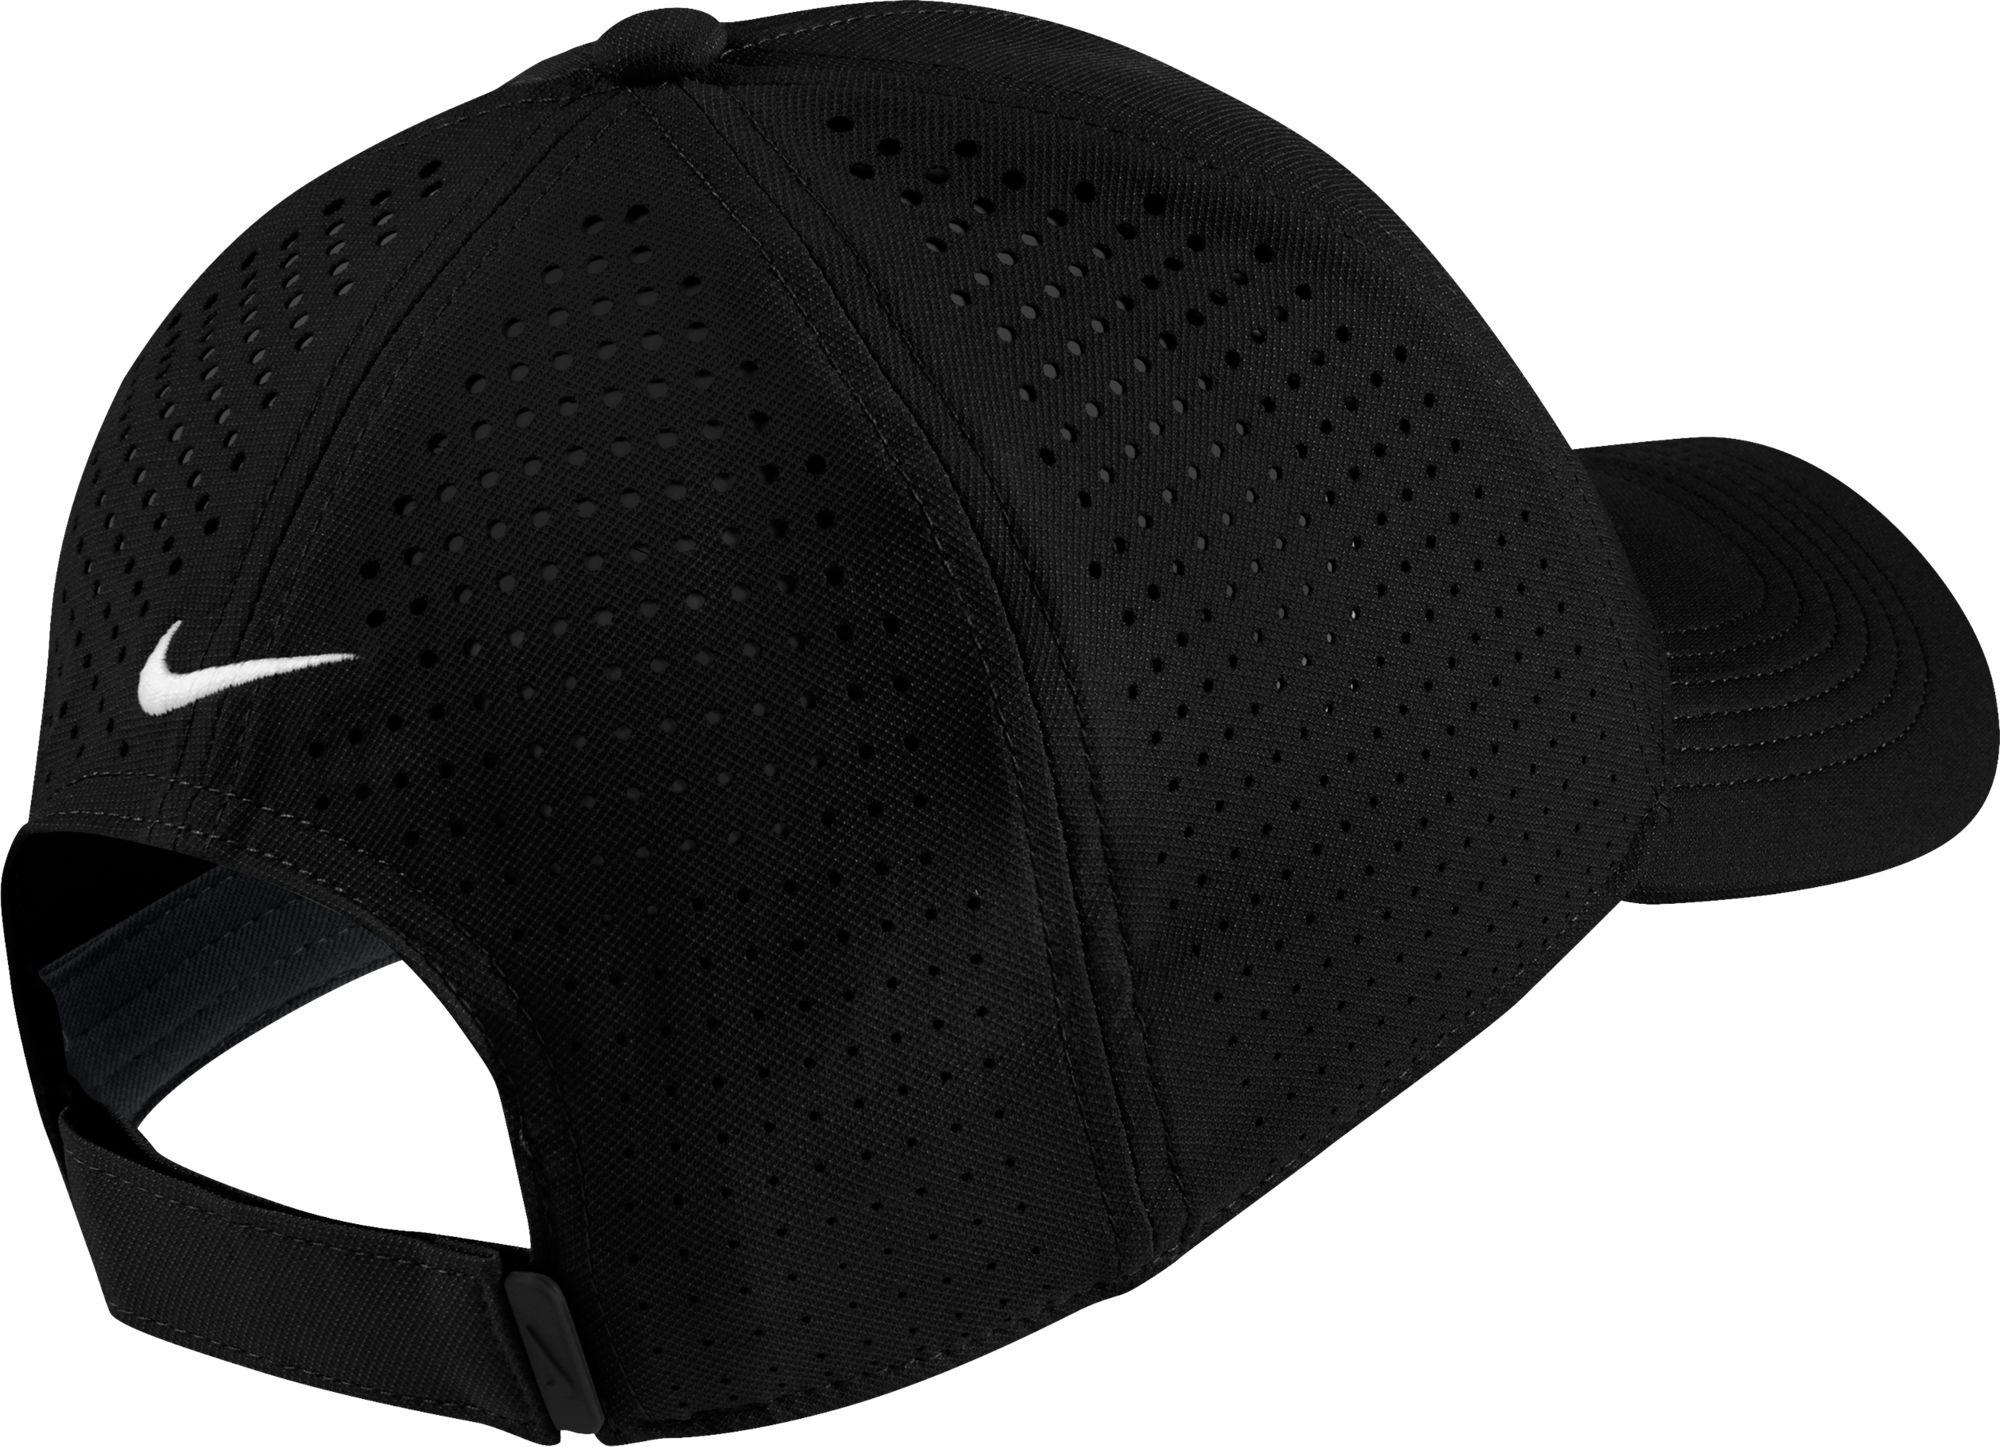 Nike - Black Aerobill Legacy91 Perforated Golf Hat for Men - Lyst. View  fullscreen 1daf62b134e